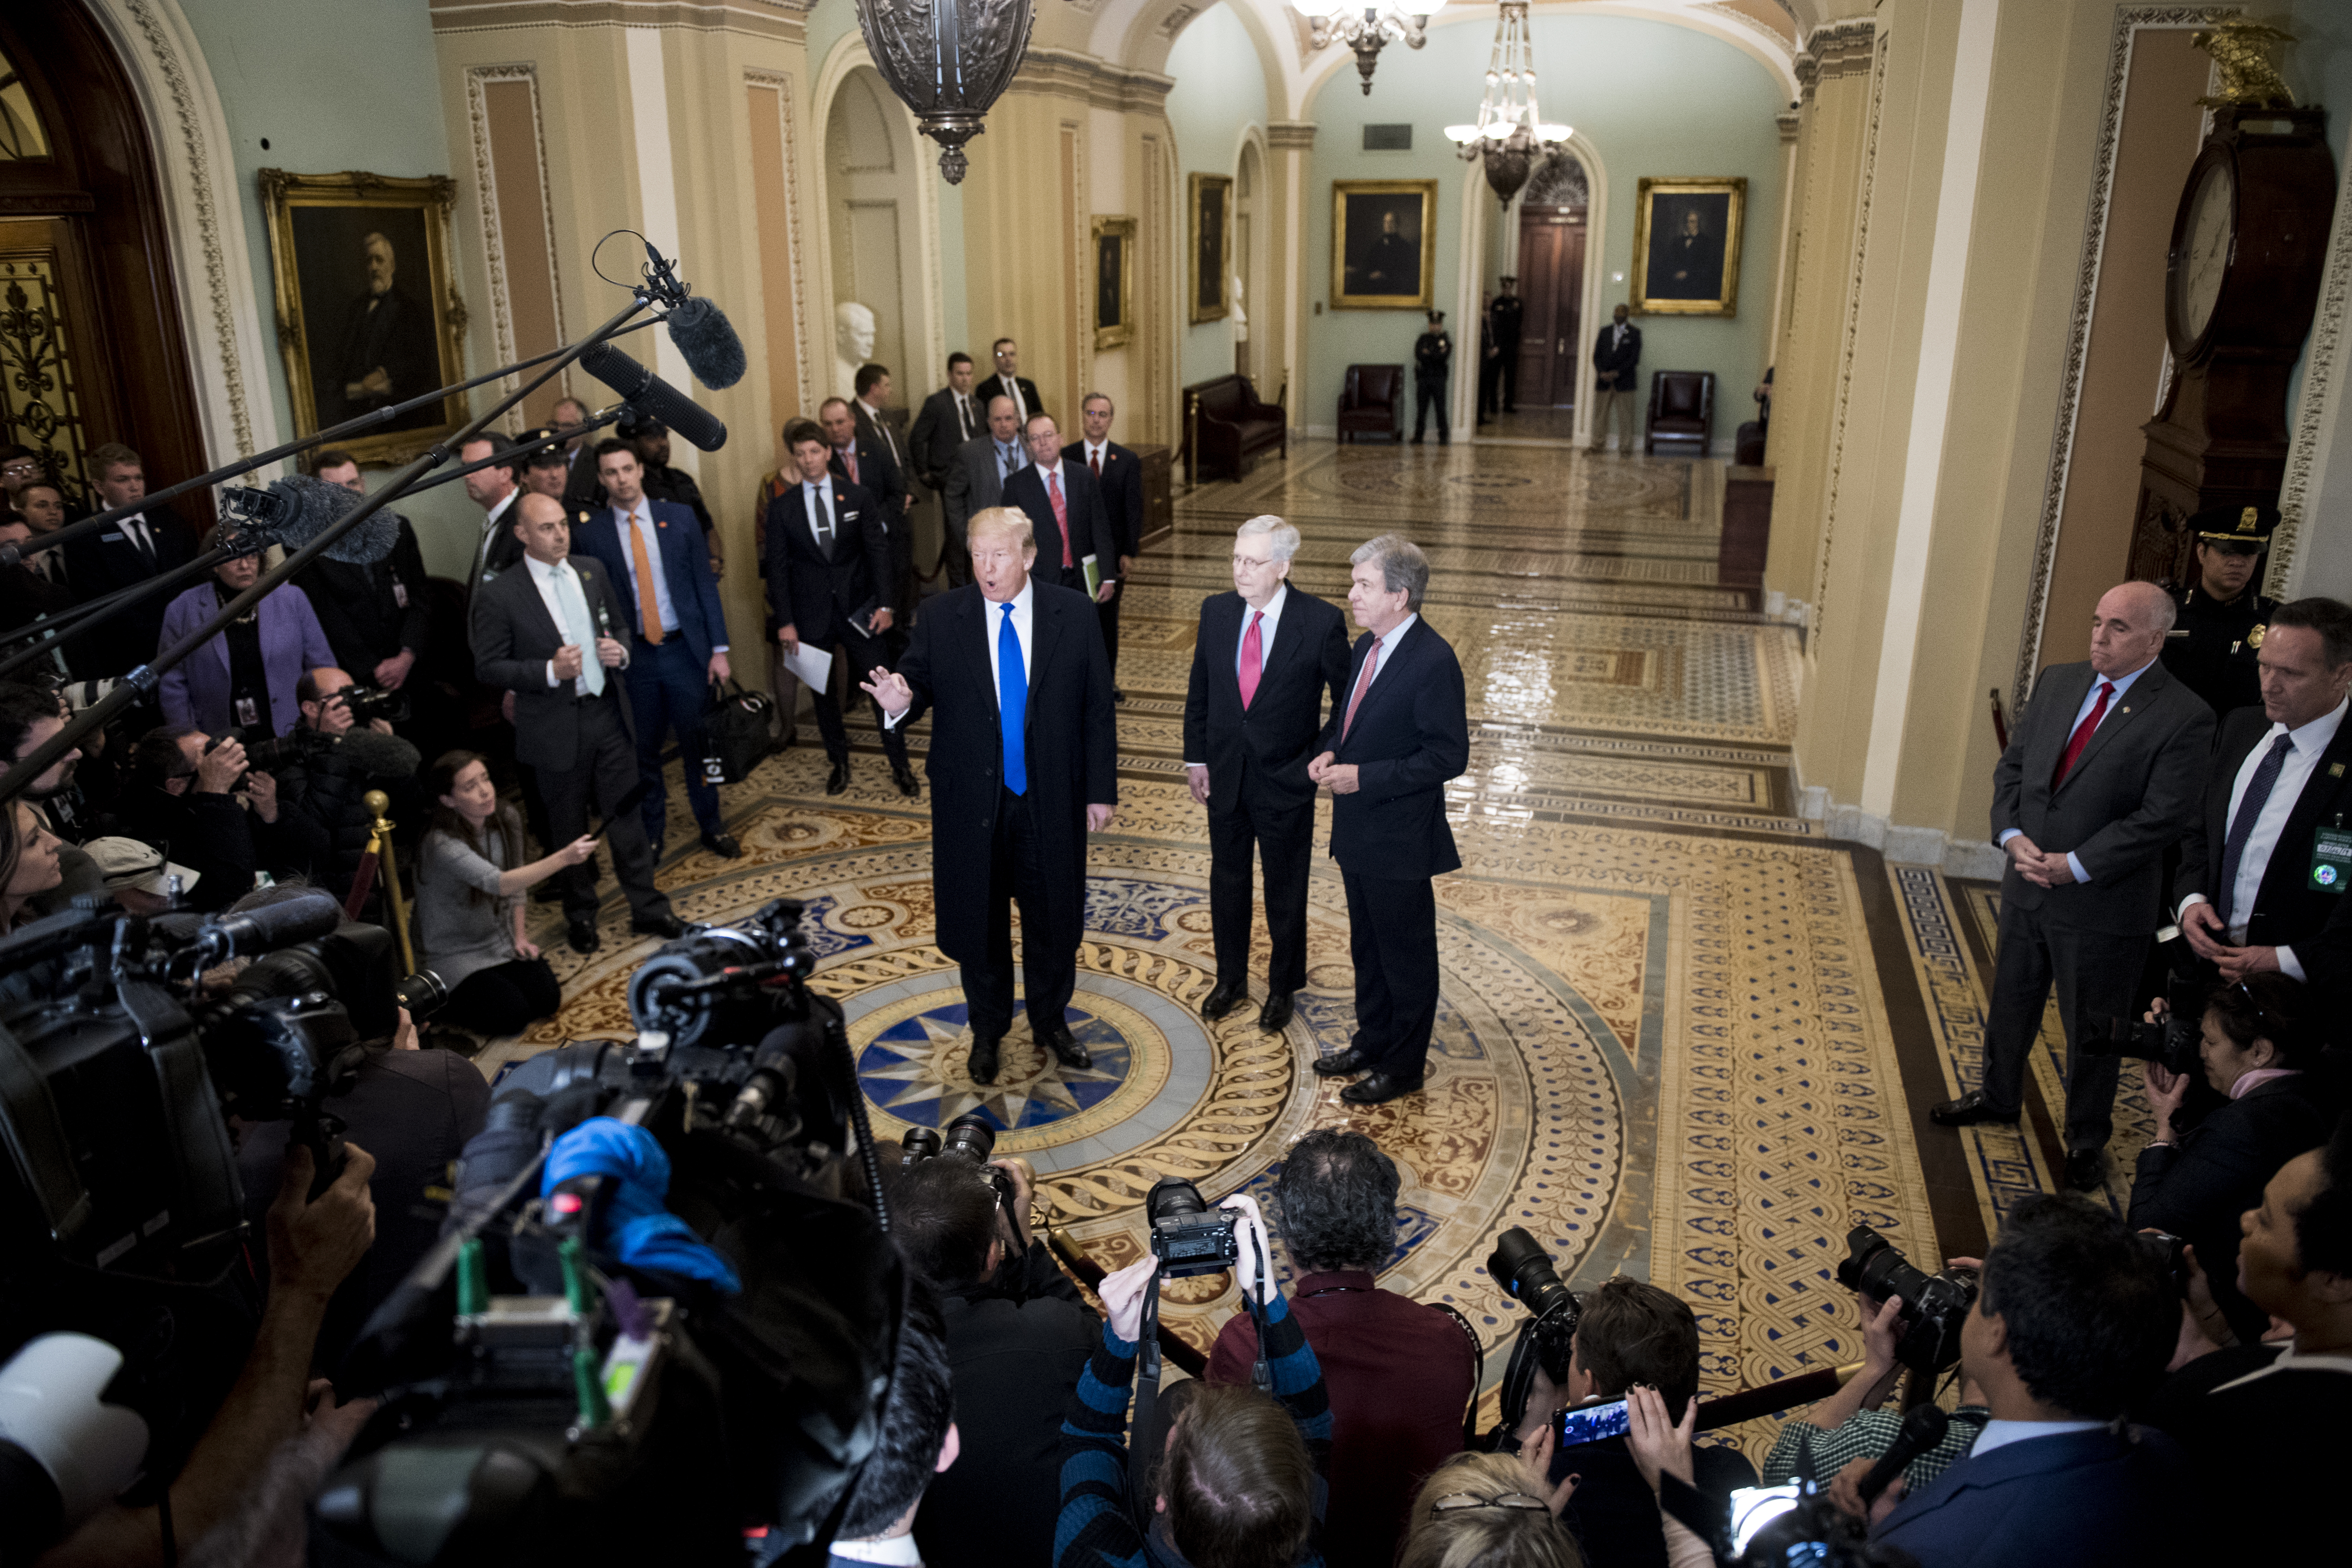 UNITED STATES - MARCH 26: President Donald Trump takes questions from reporters he arrives with Senate Majority Leader Mitch McConnell, R-Ky., center, and Sen. Roy Blunt, R-Mo., right, for the Senate Republicans' lunch in the Capitol on Tuesday, March 26, 2019. (Photo By Bill Clark/CQ Roll Call)